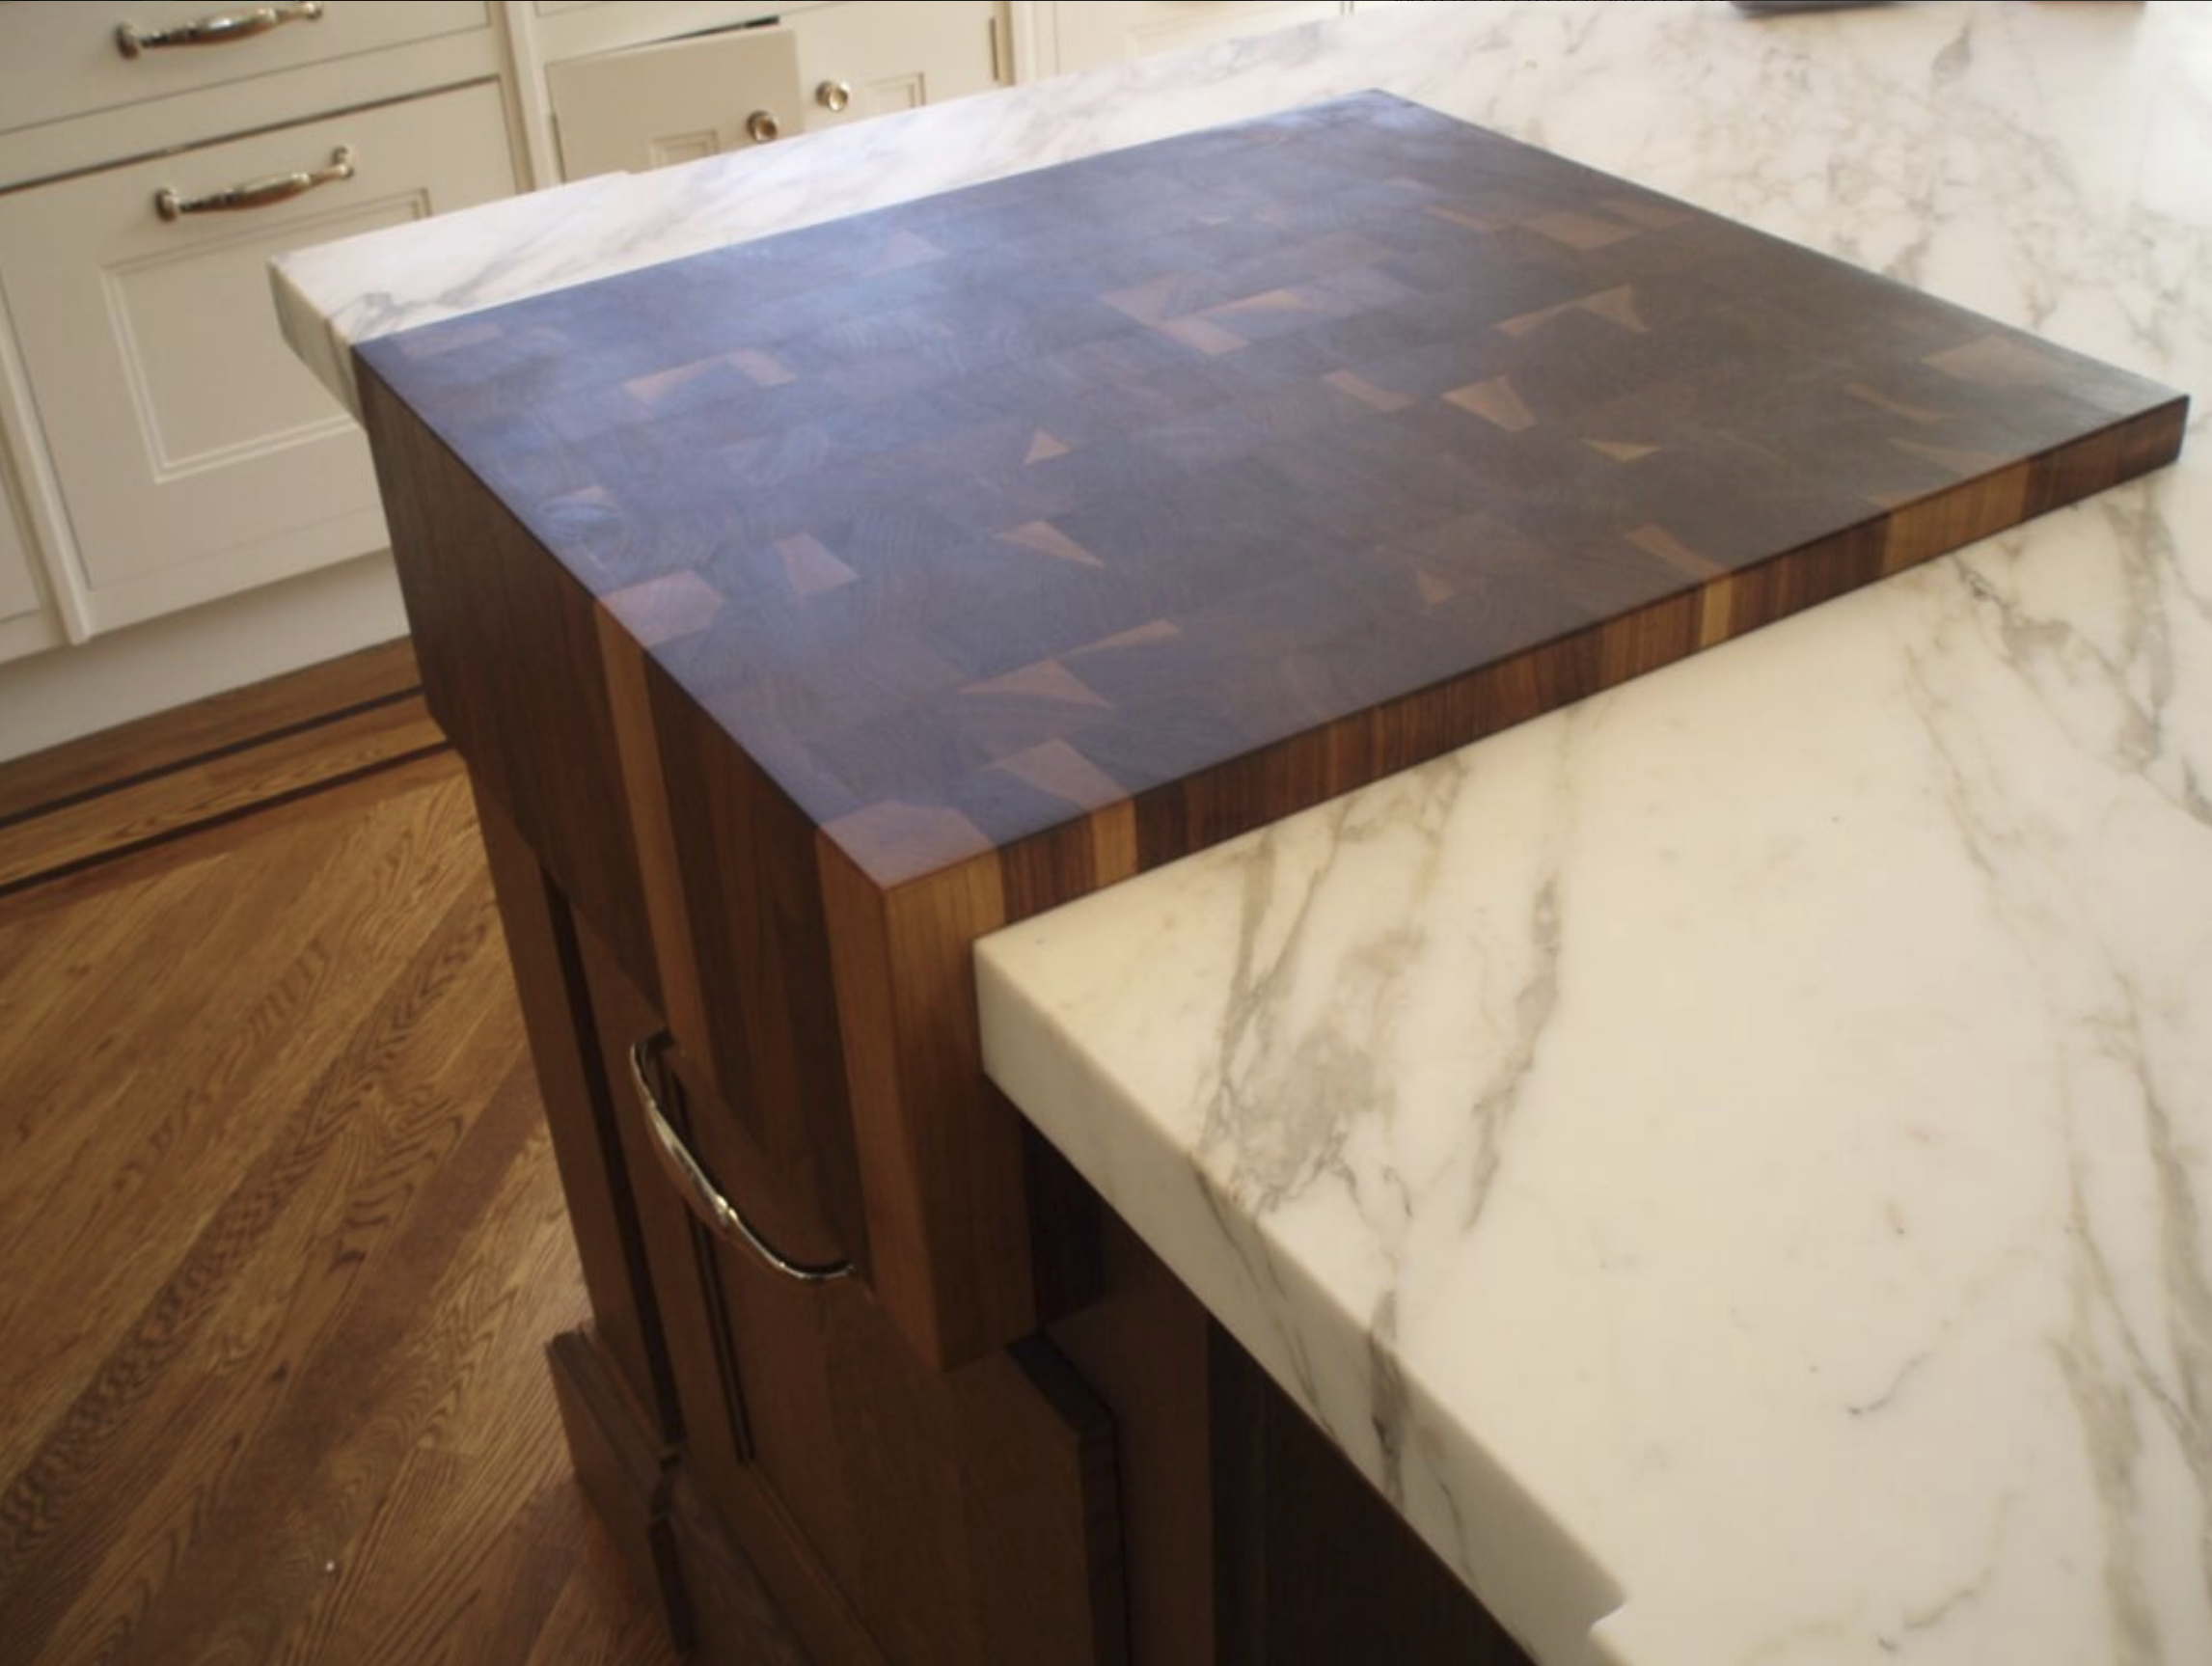 End Grain Walnut Butcher Block Inset Into Marble Countertop Diy